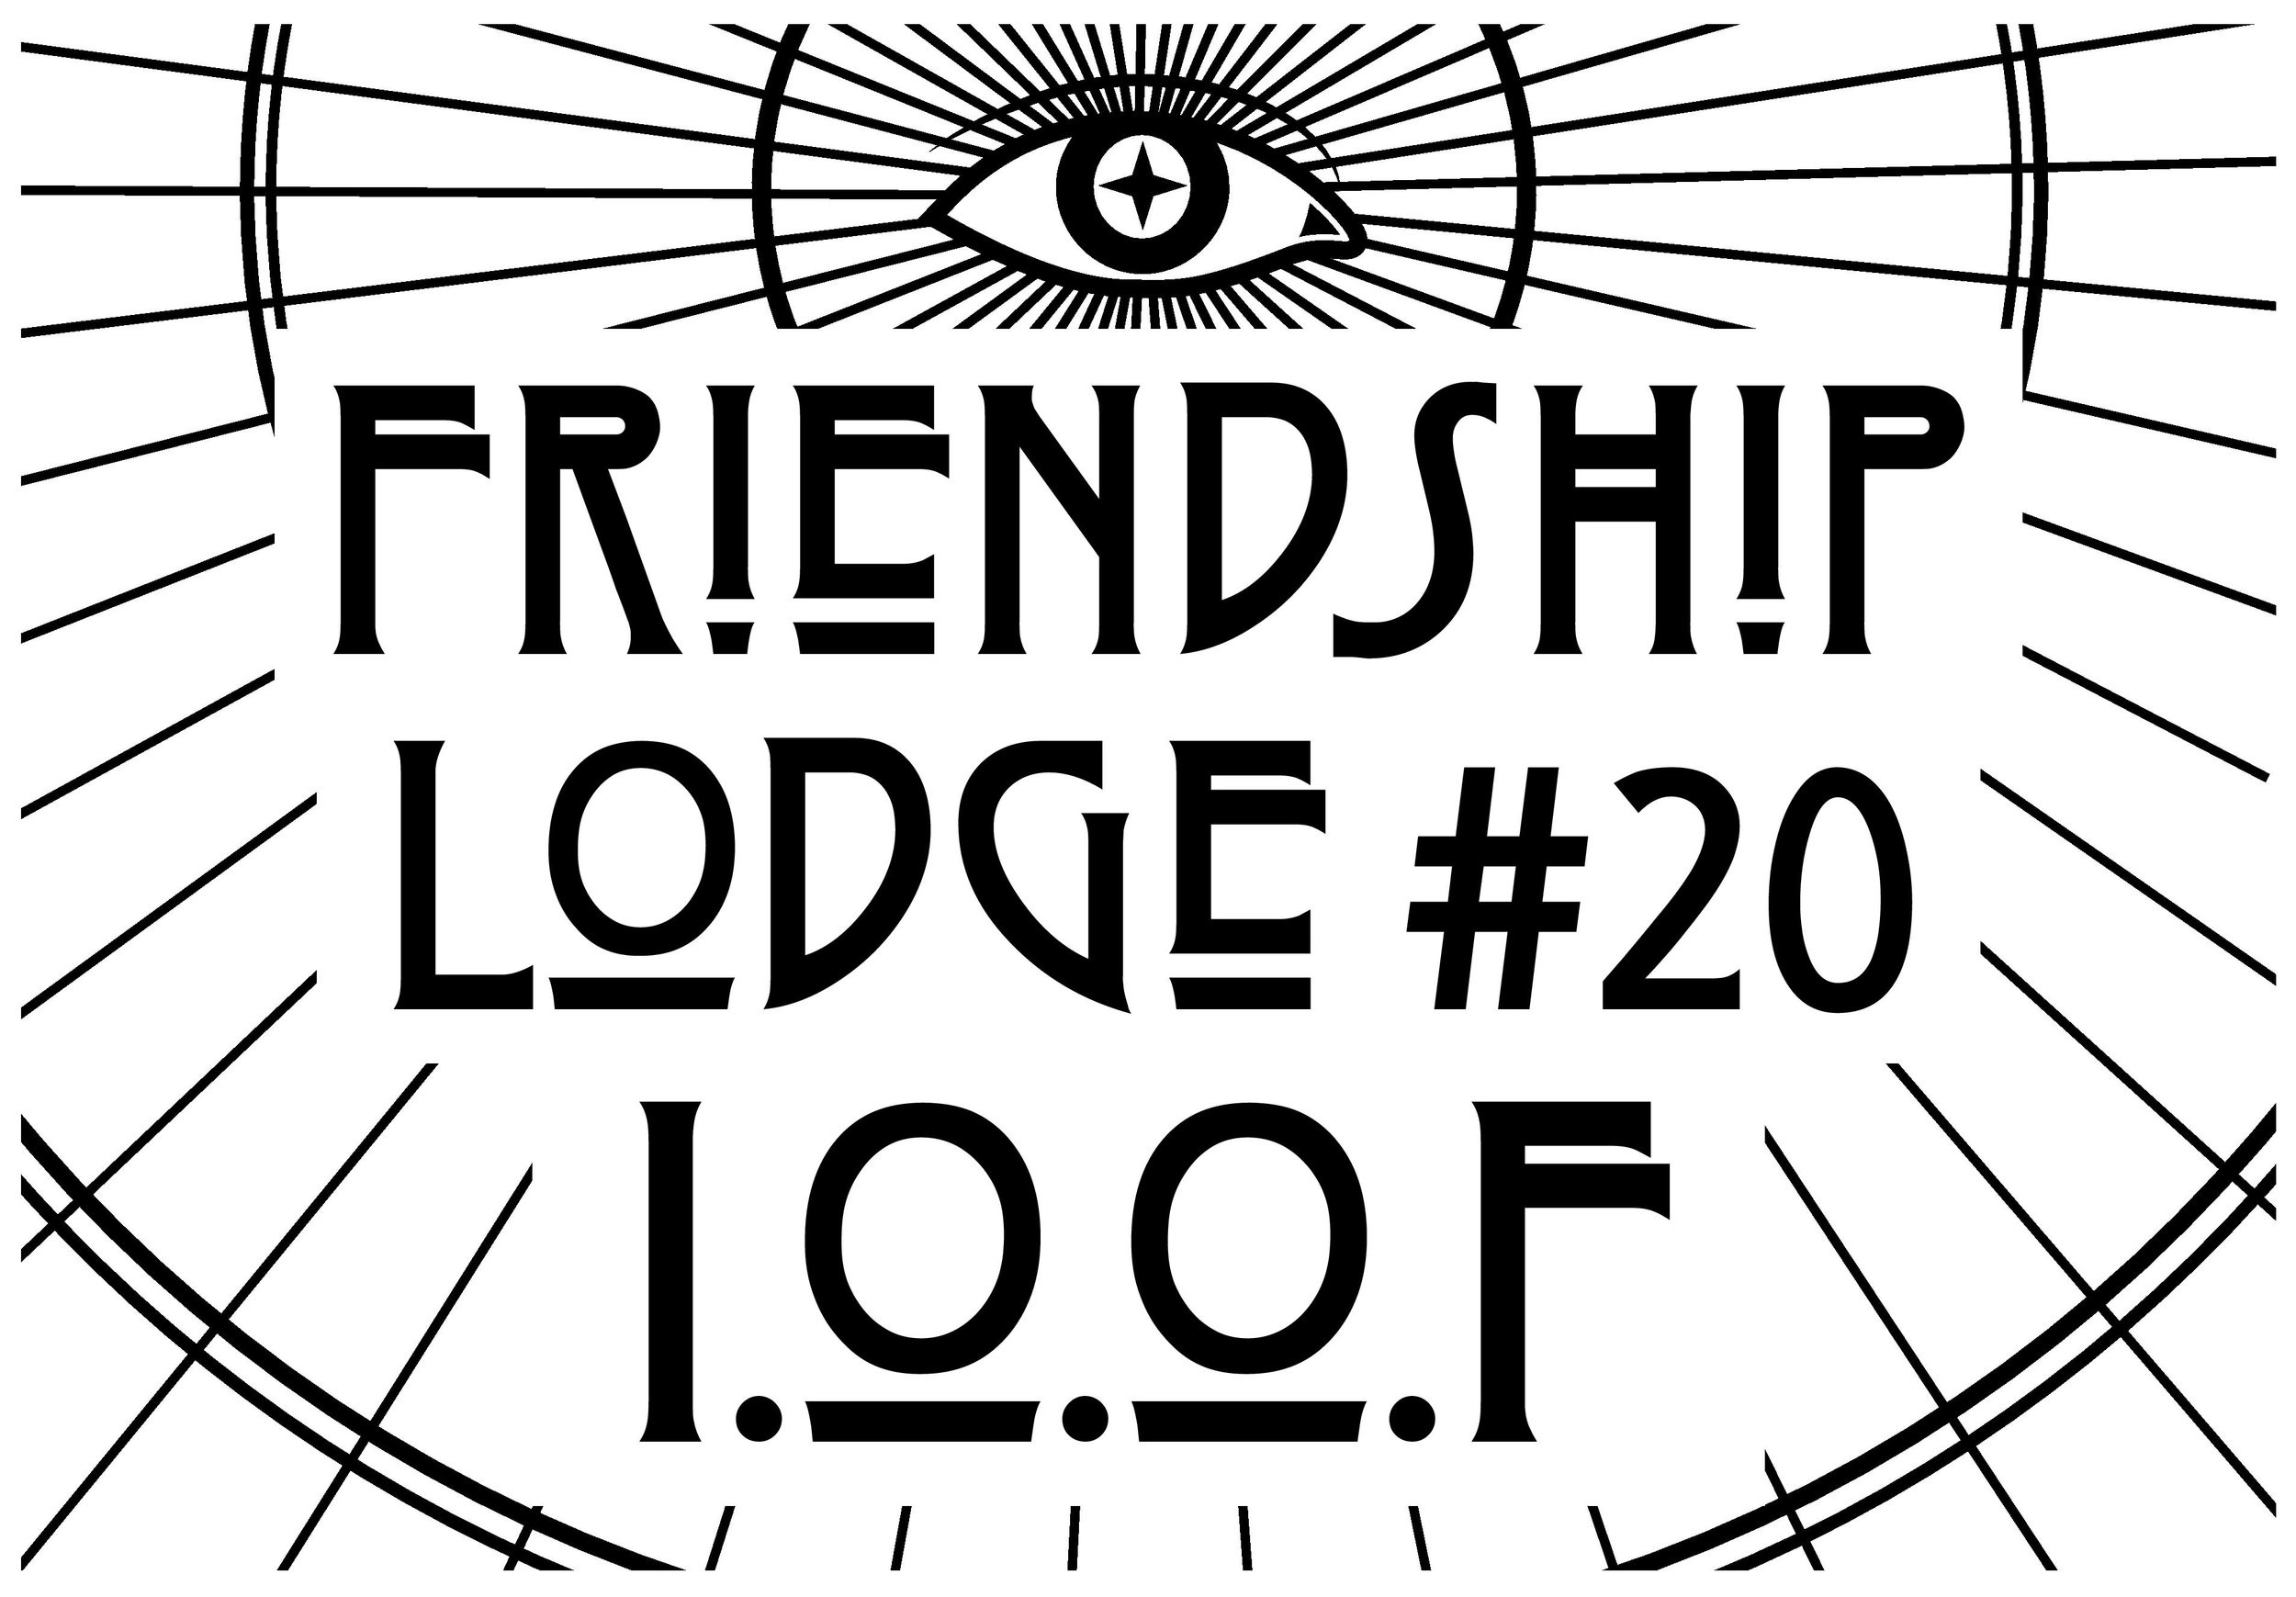 Ever wondered who the Oddfellows are? As it turns out, they're cool people who play a lot of games and do good work for the community. Check them out at   www. massioof.org/lodges